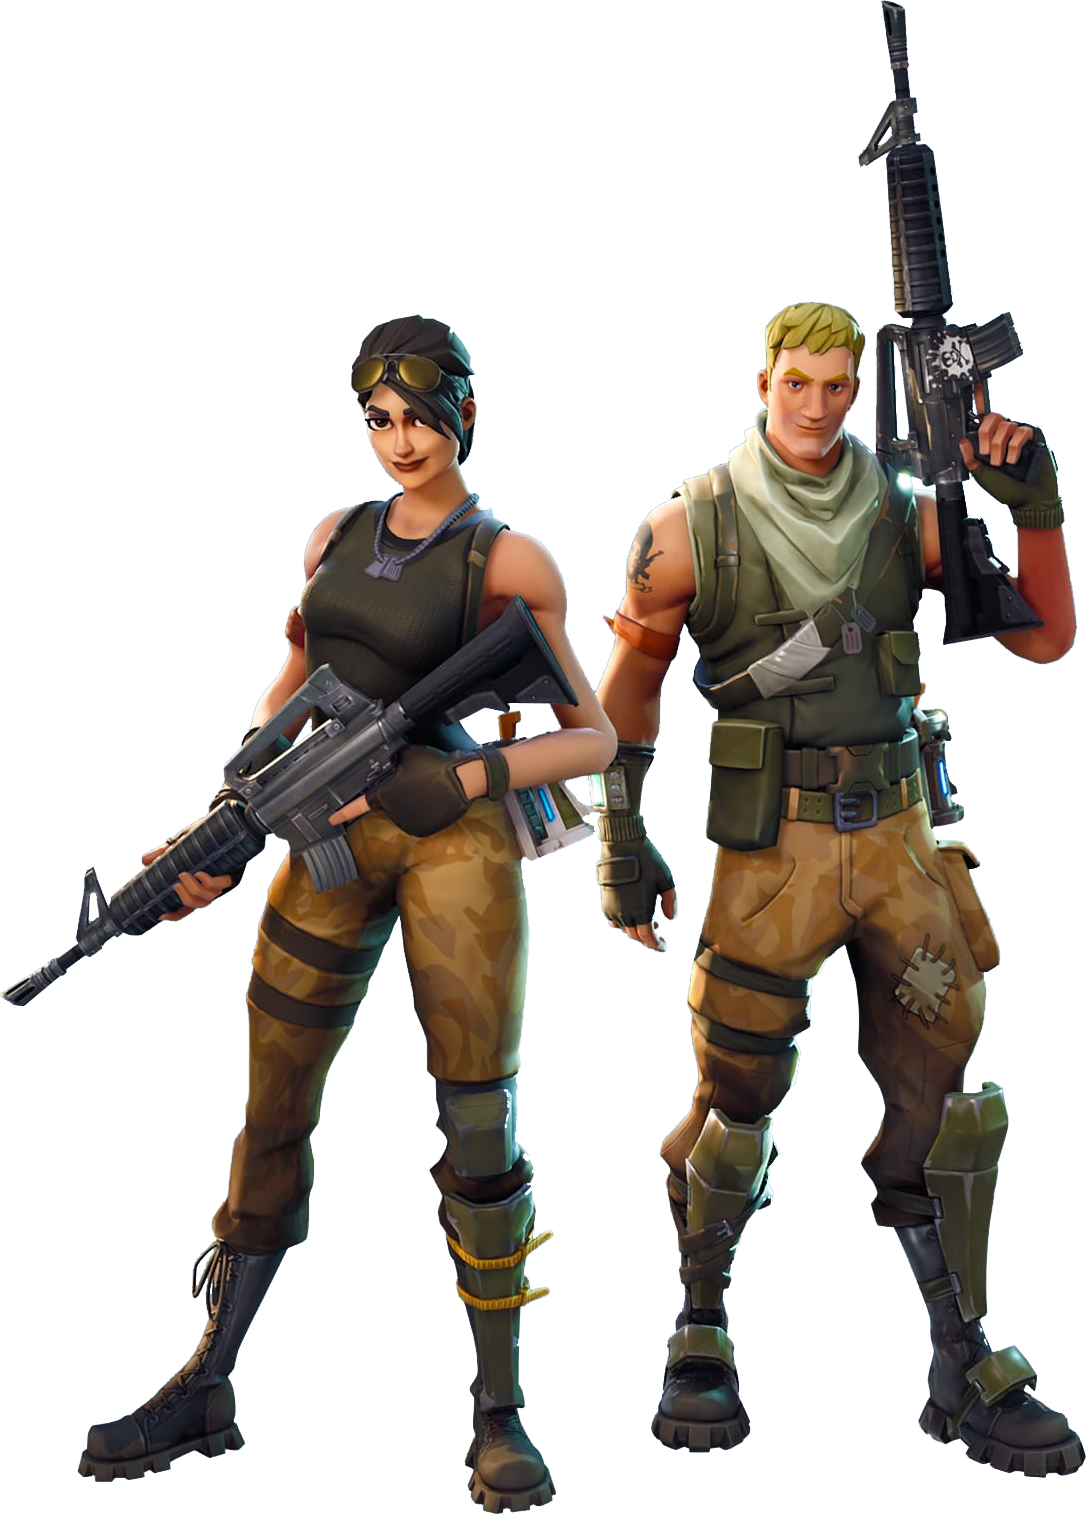 Soldier Fortnite Skin Images Xbox One Skin